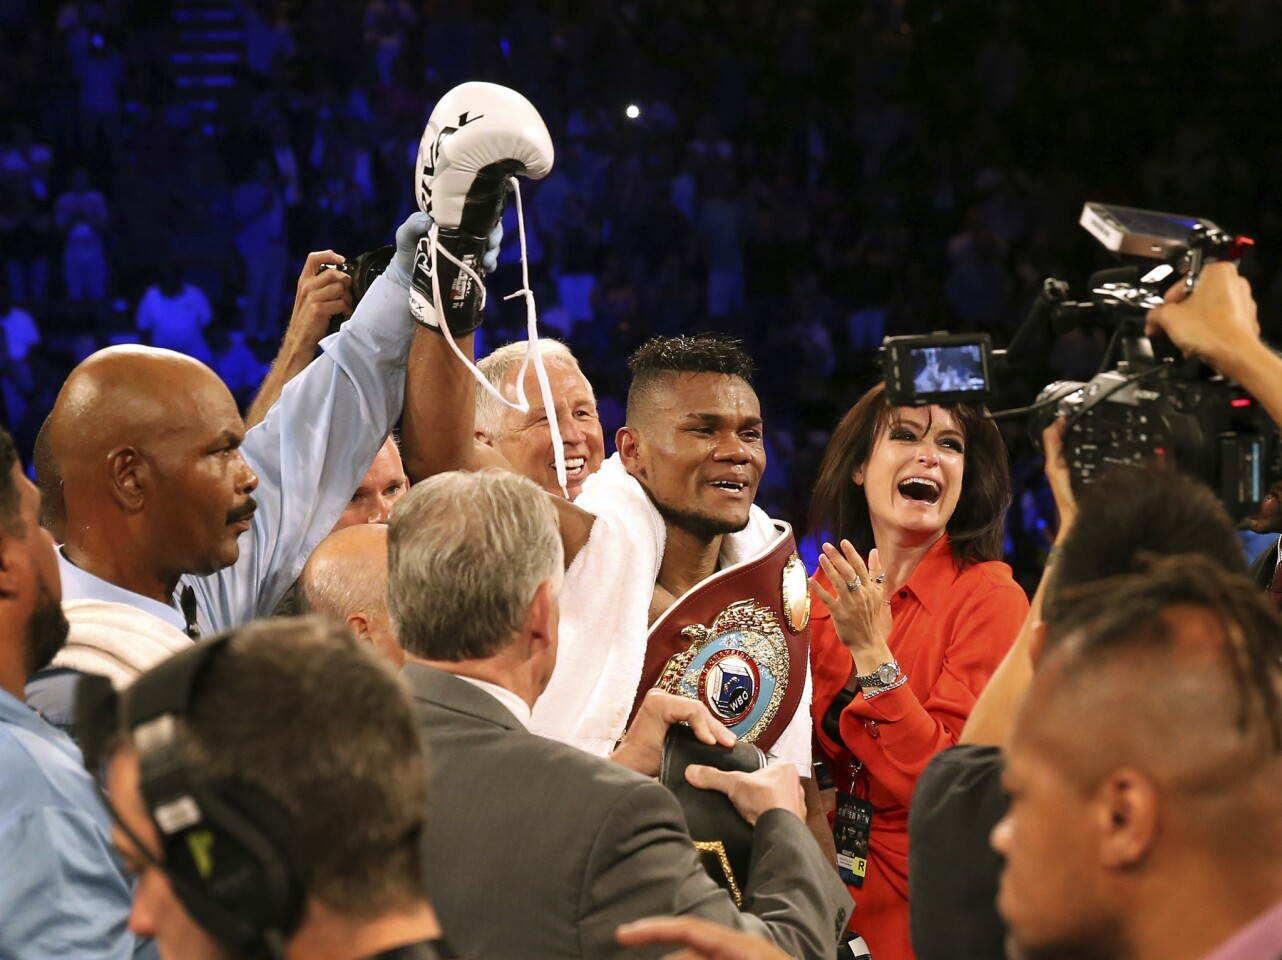 Eleider Alvarez, center, of Colombia, celebrates after he knocked out Sergey Kovalev, of Russia, in the seventh round of their boxing bout at 175 pounds, Saturday, Aug. 4, 2018, in Atlantic City, N.J.